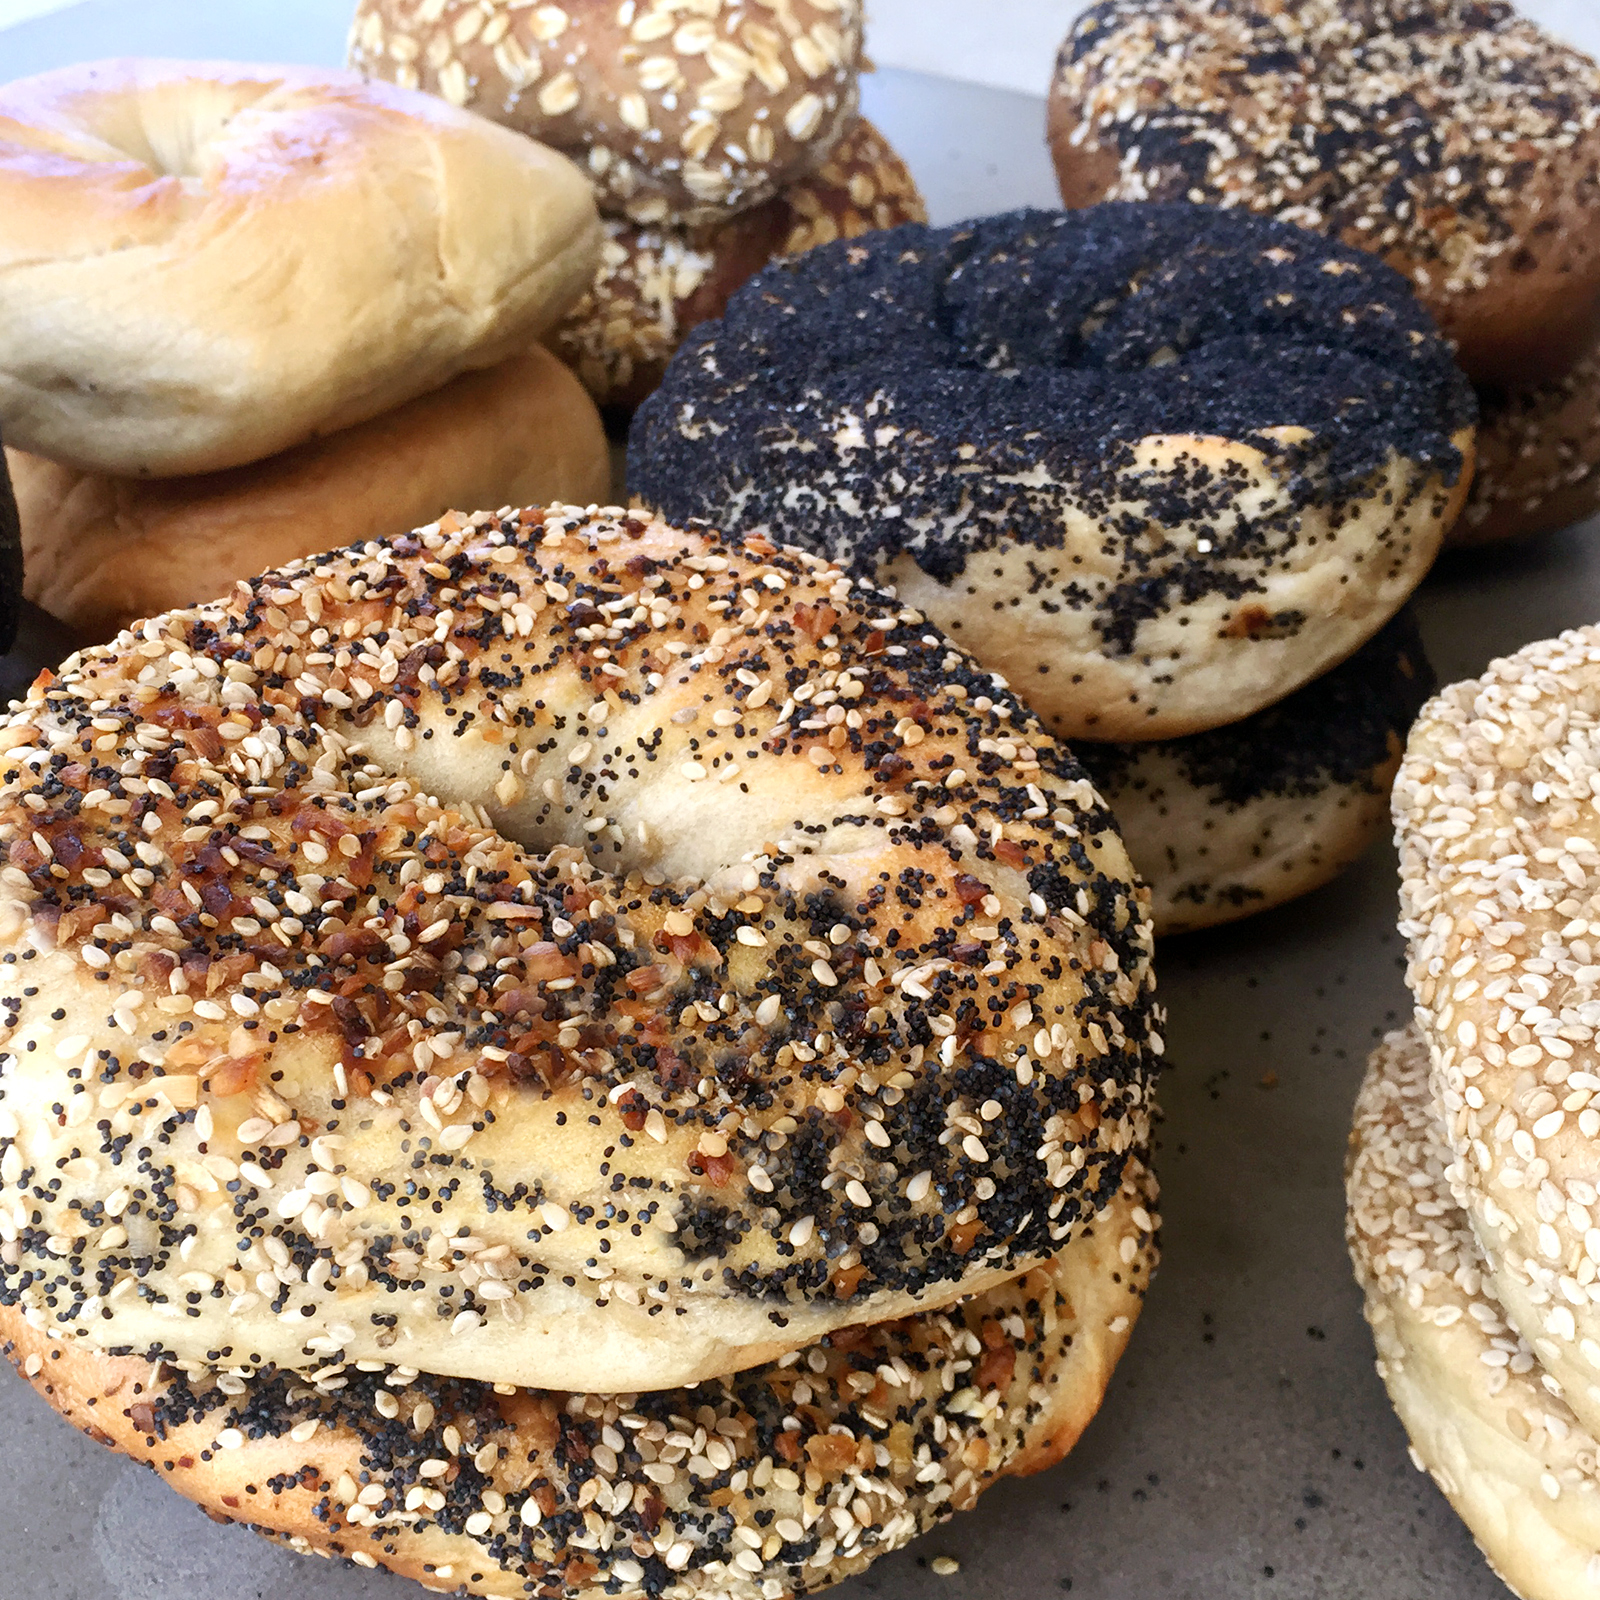 _essa-bage-whole-roundup-bagel-product4.jpg